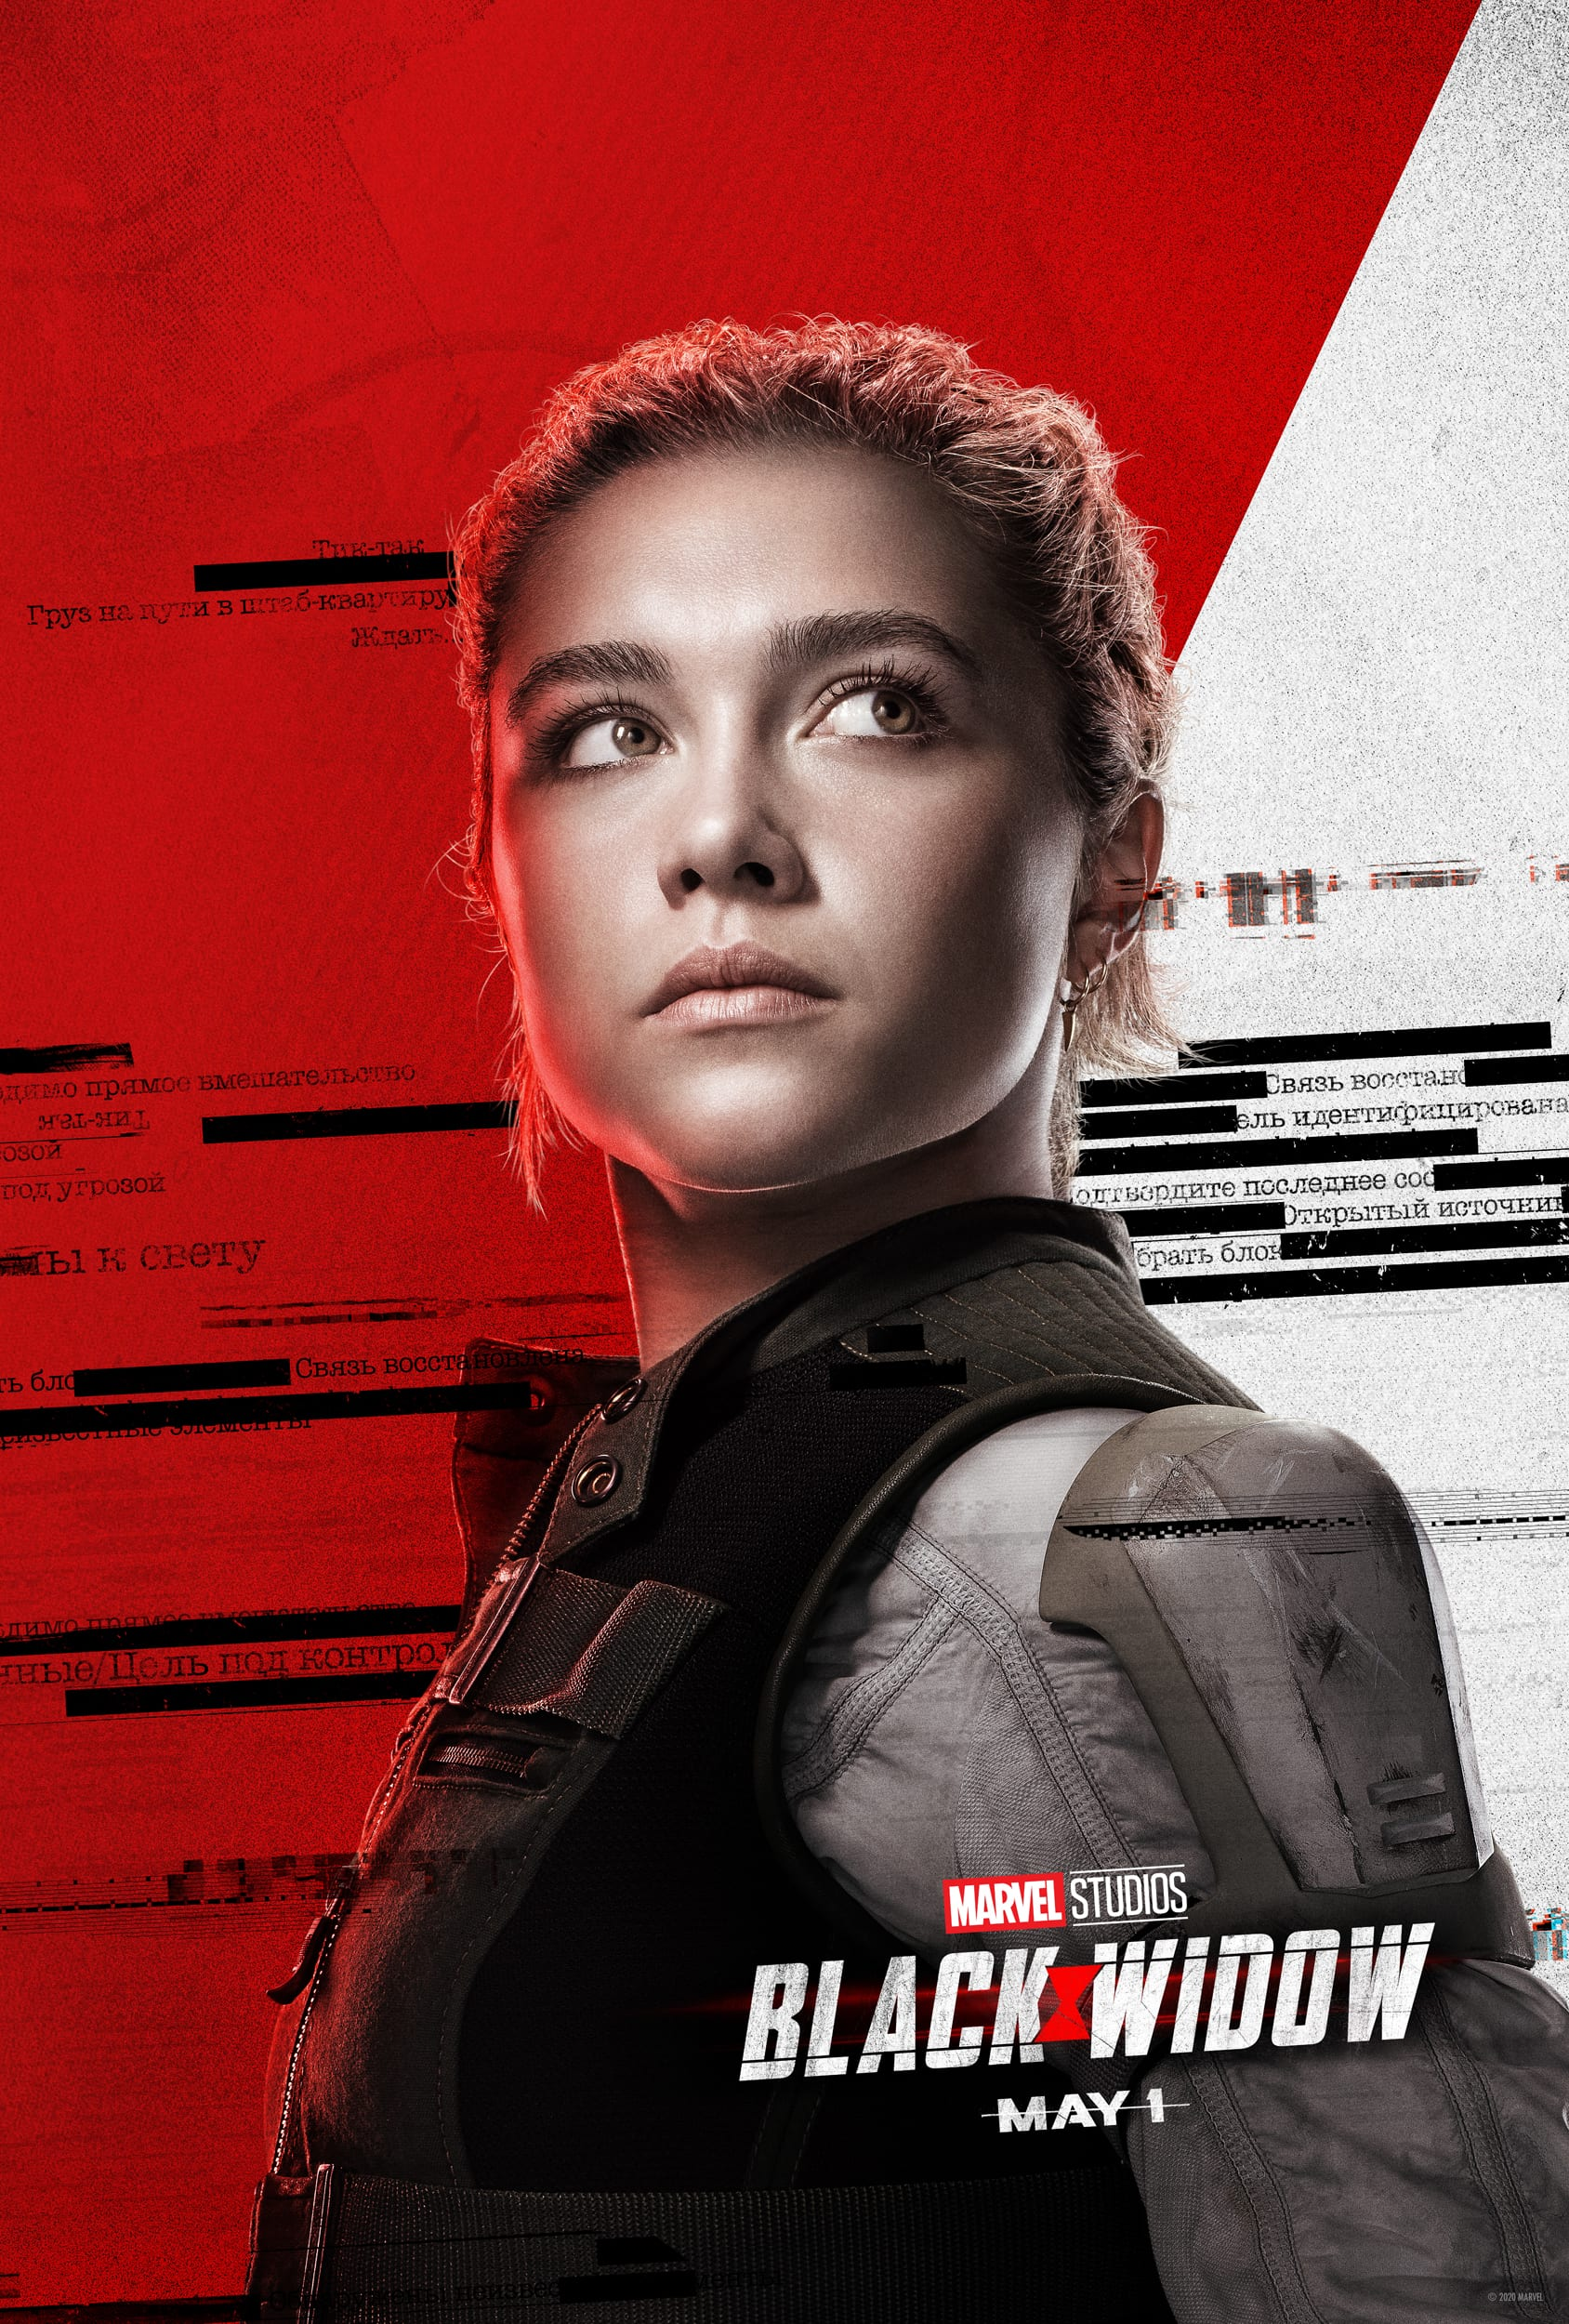 Marvel Black Widow Character Posters Florence Pugh as Yelena Belova